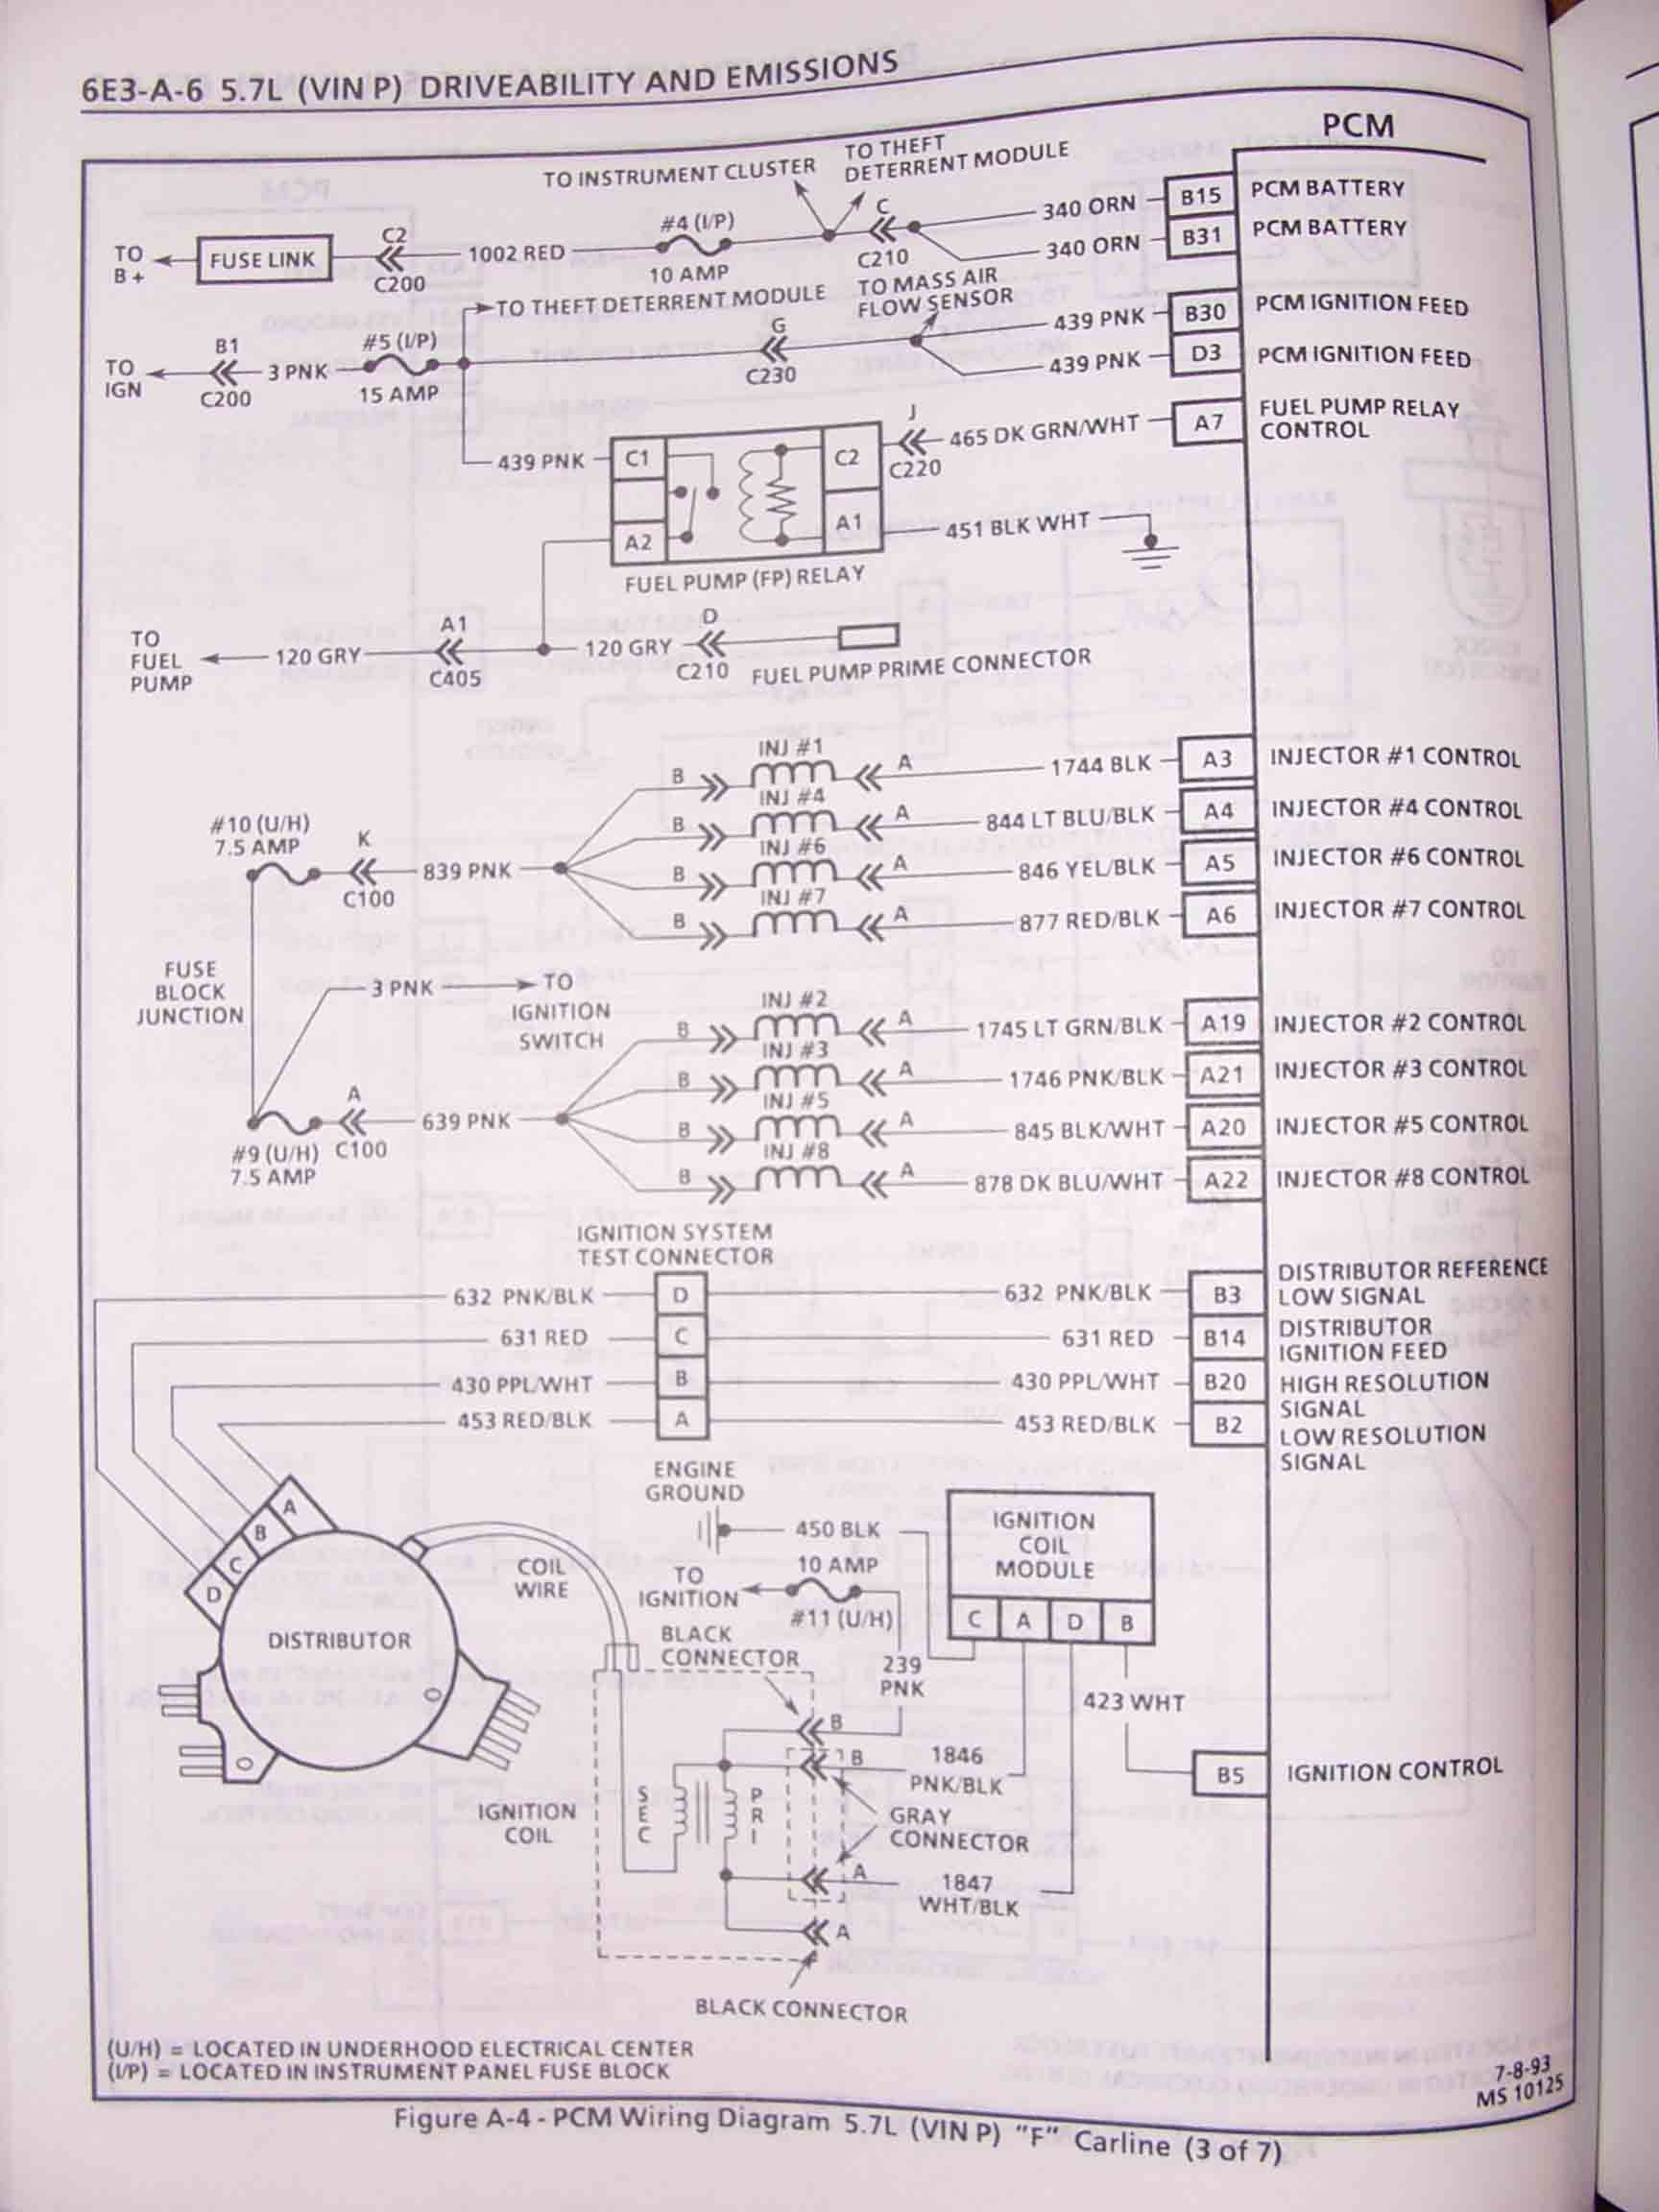 painless wiring diagram chevy with 95 Lt1 Wiring Harness Diagram Wiring Diagrams on Painless Wiring Harness For Cars together with Bm Neutral Safety Switch Wiring Diagram together with chevsofthe40s moreover Showthread together with Wiring Diagram Gm Tilt Steering Column.